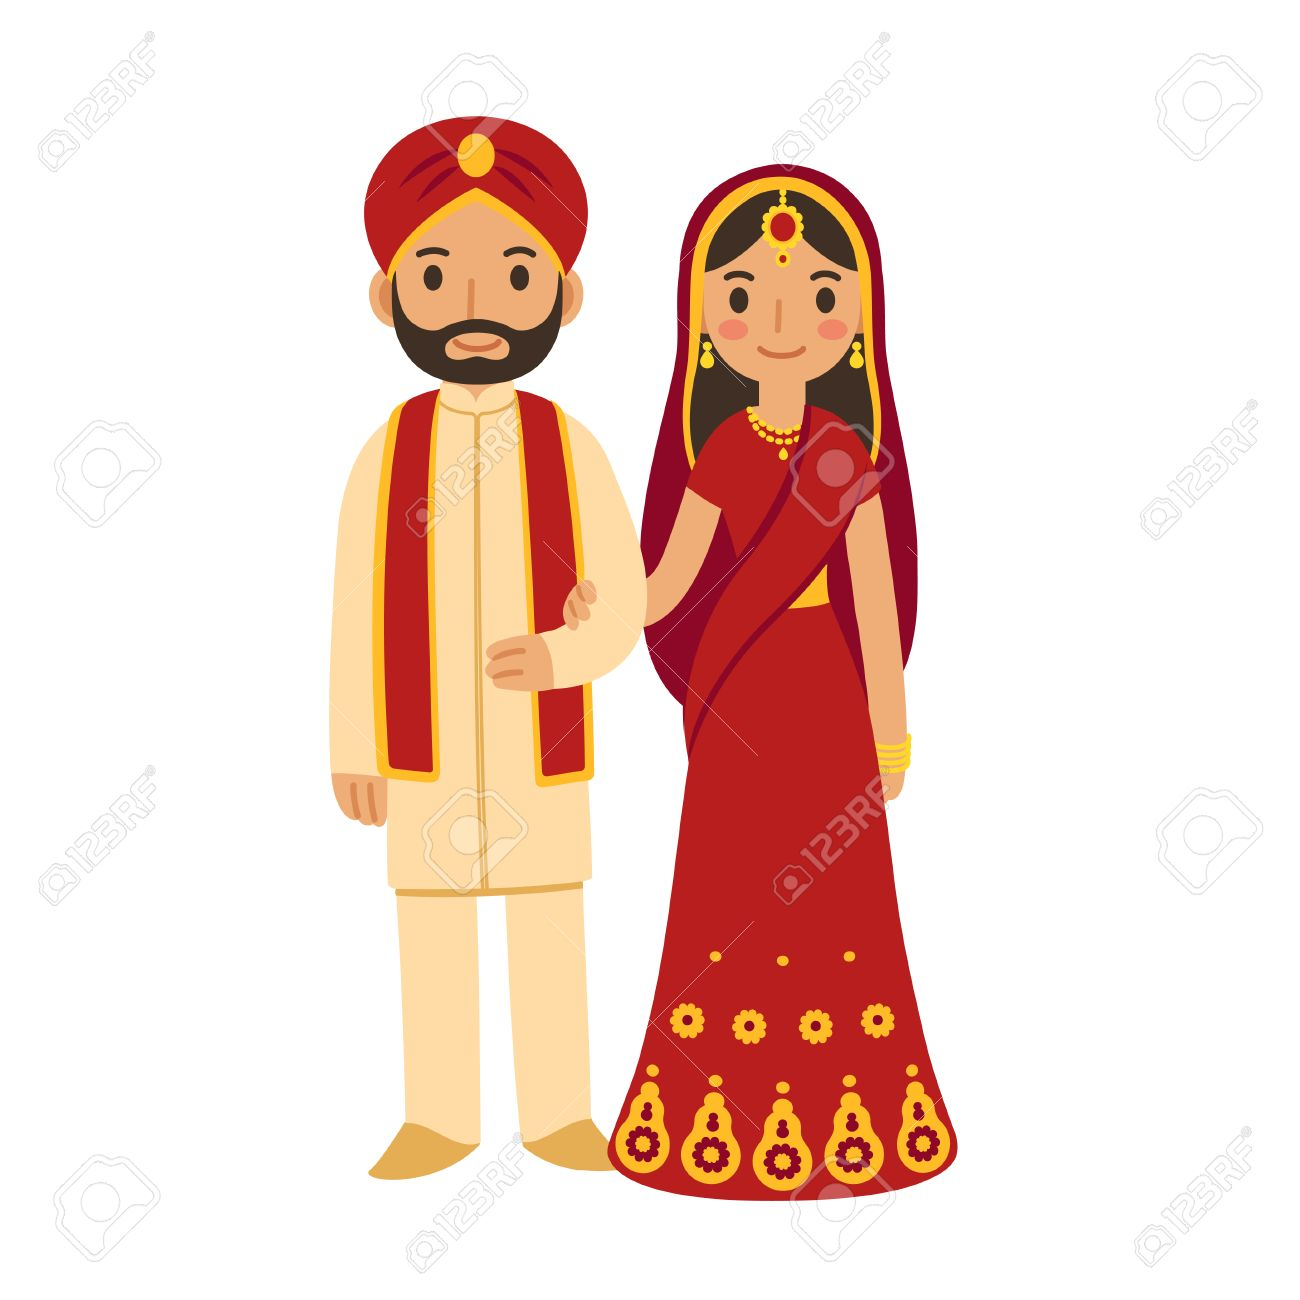 3dd7bd0d62 Indian wedding couple in traditional clothing. Cute cartoon vector  illustration. Stock Vector - 63947771